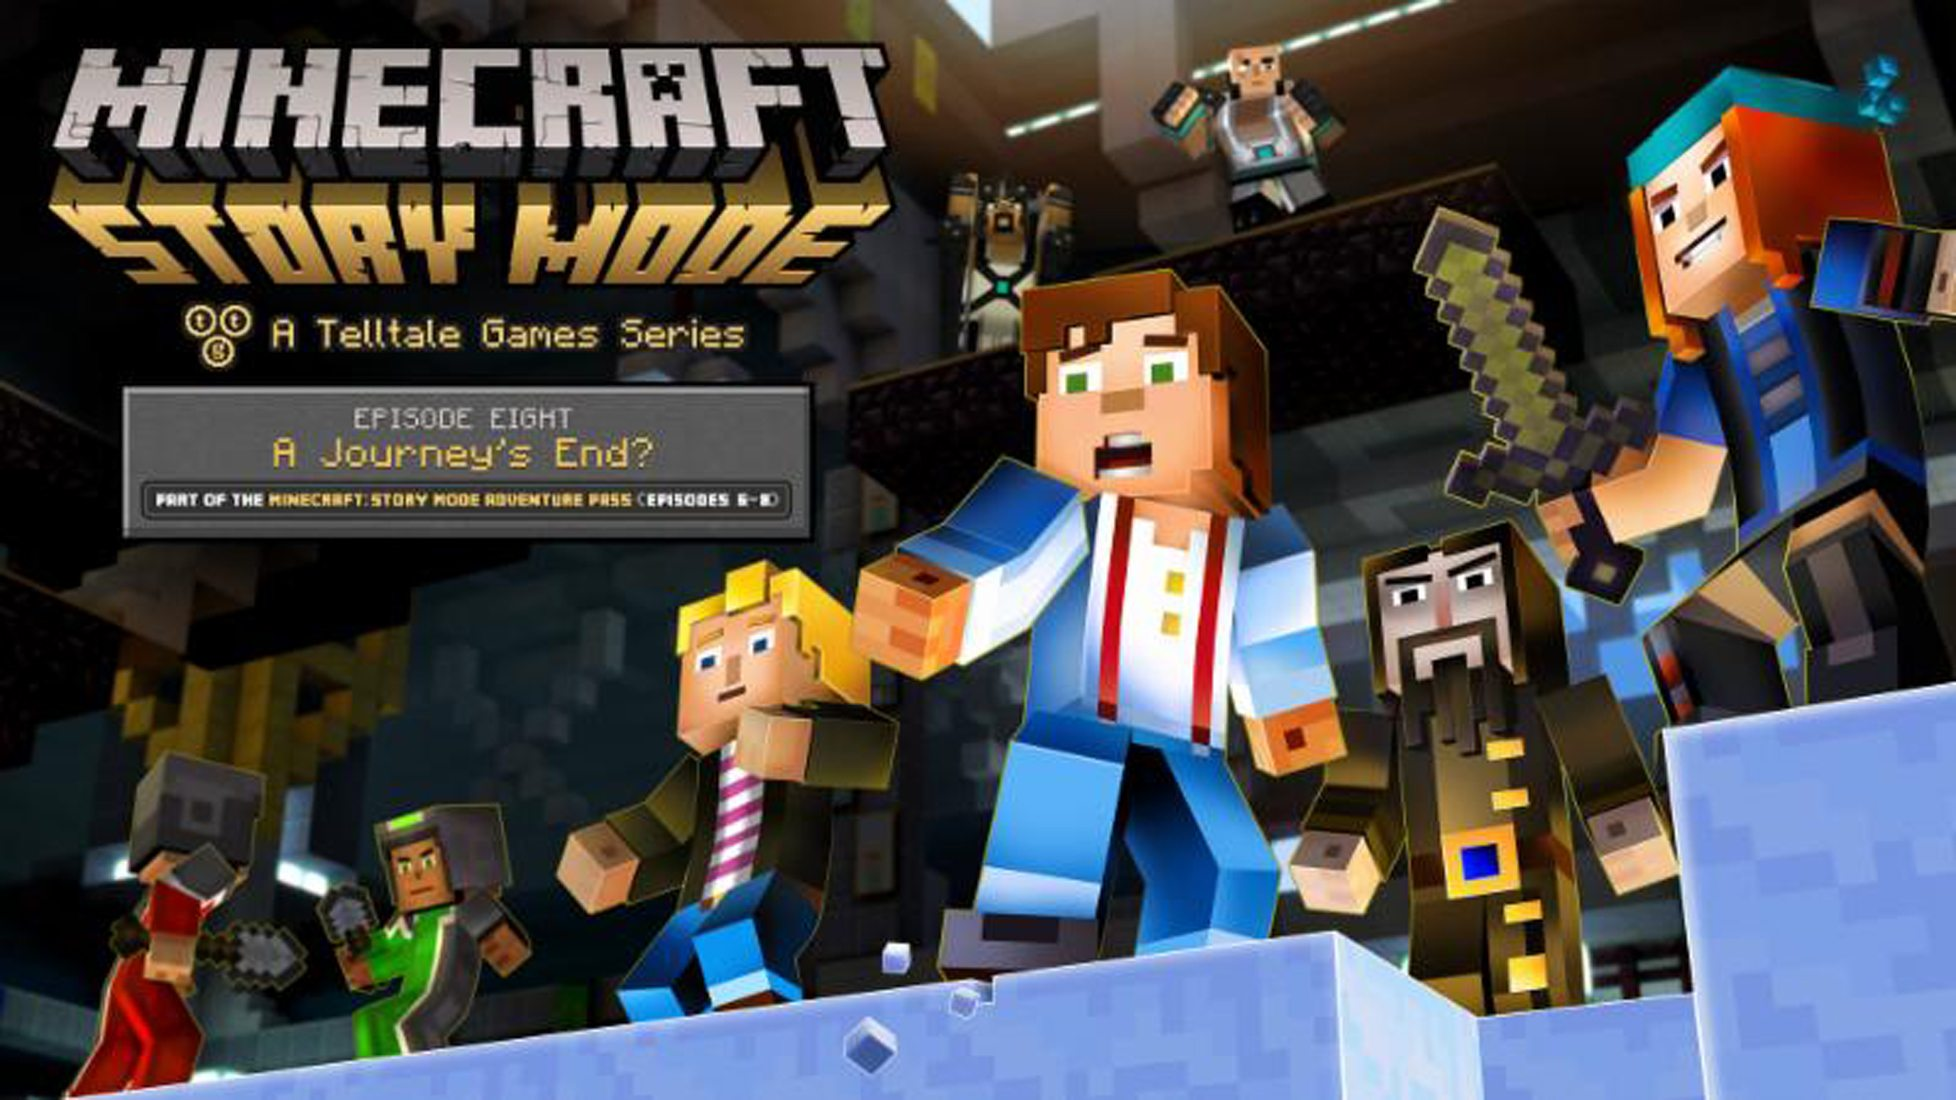 Minecraft: Story Mode - A Telltale Games Series Ep. 8: 'A Journey's End?' is Now Available